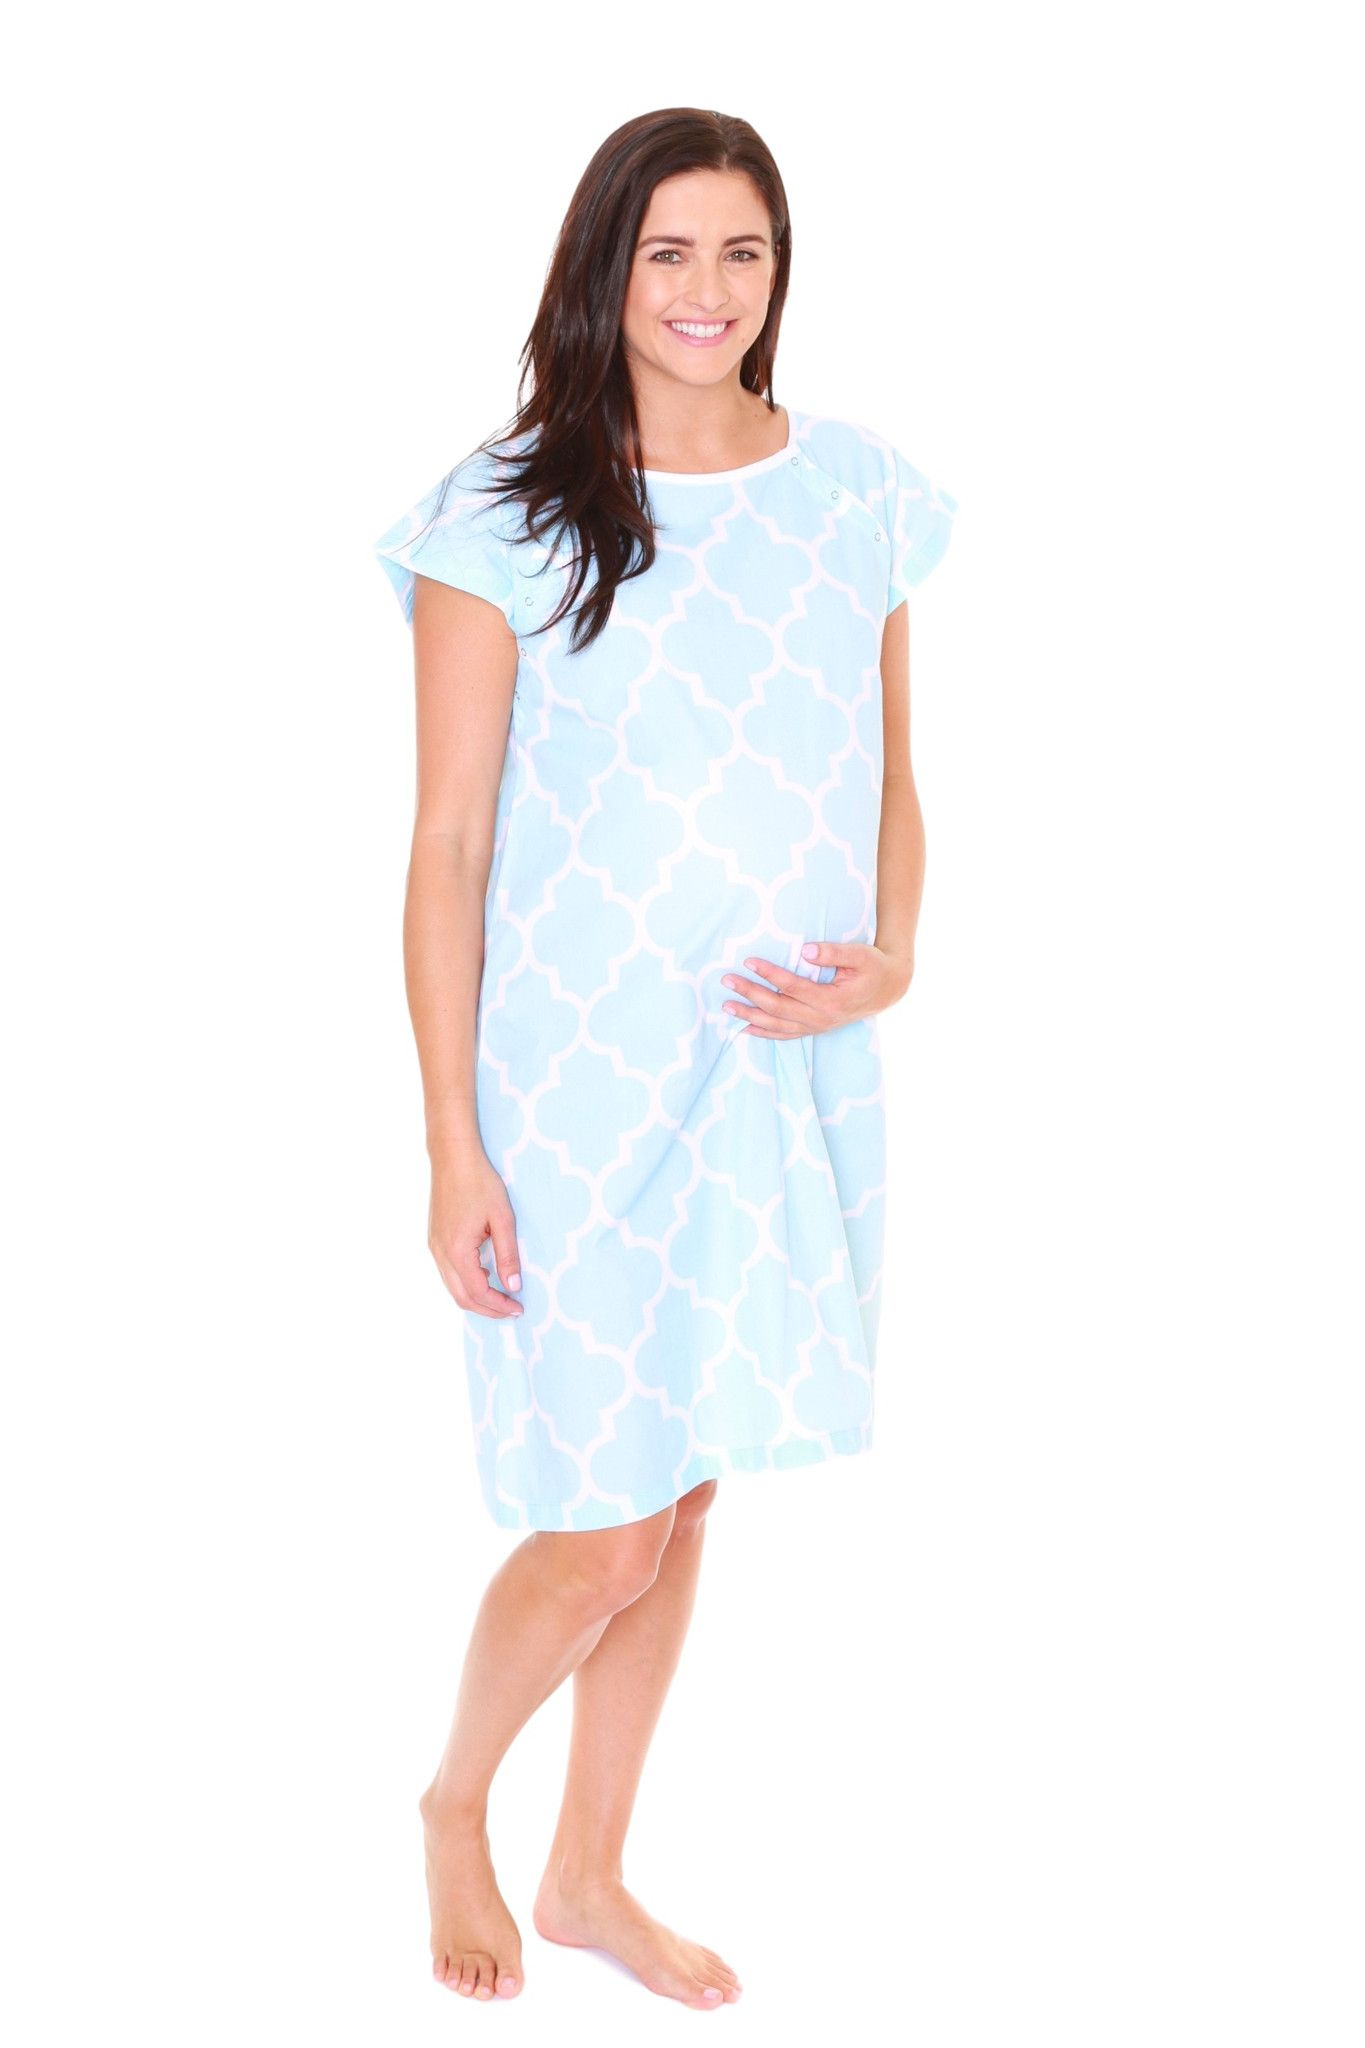 Marin Gownie Maternity Delivery Labor Hospital Birthing Gown Blue ...